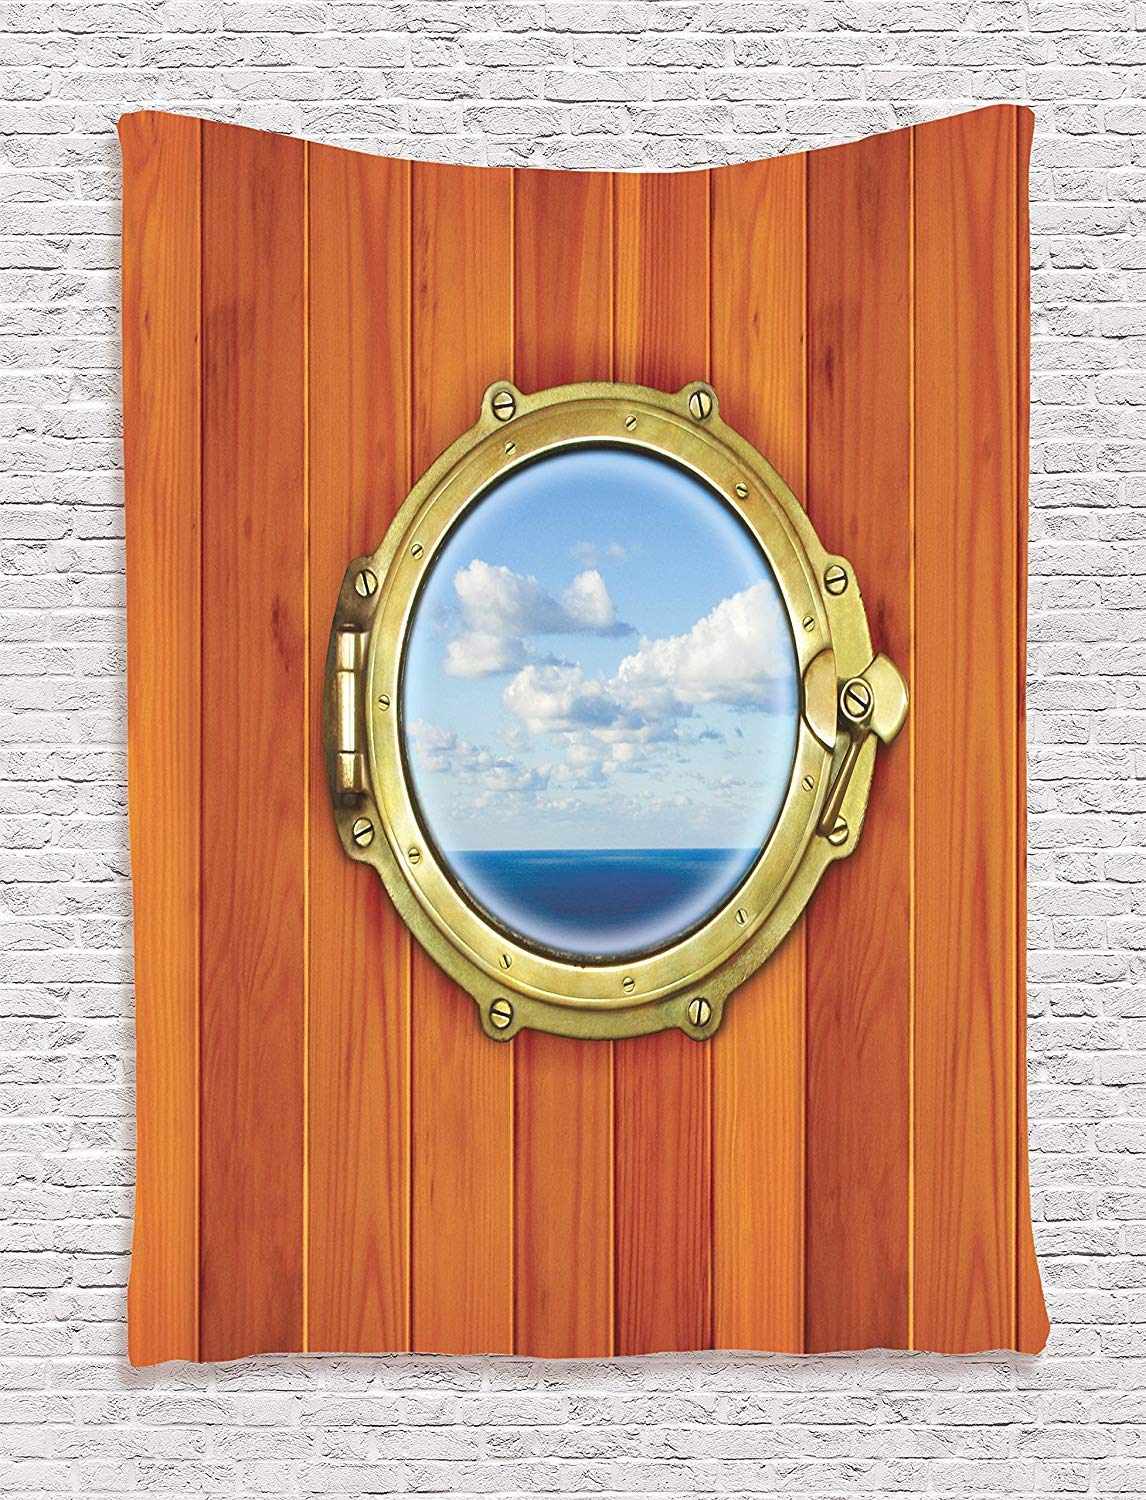 THndjsh Nautical Decor Tapestry Wall Hanging, Porthole On The Wooden Background Window Ship At The Old Sailing Vessel, Bedroom Living Room Dorm Decor, 60 W x 80 L Inches